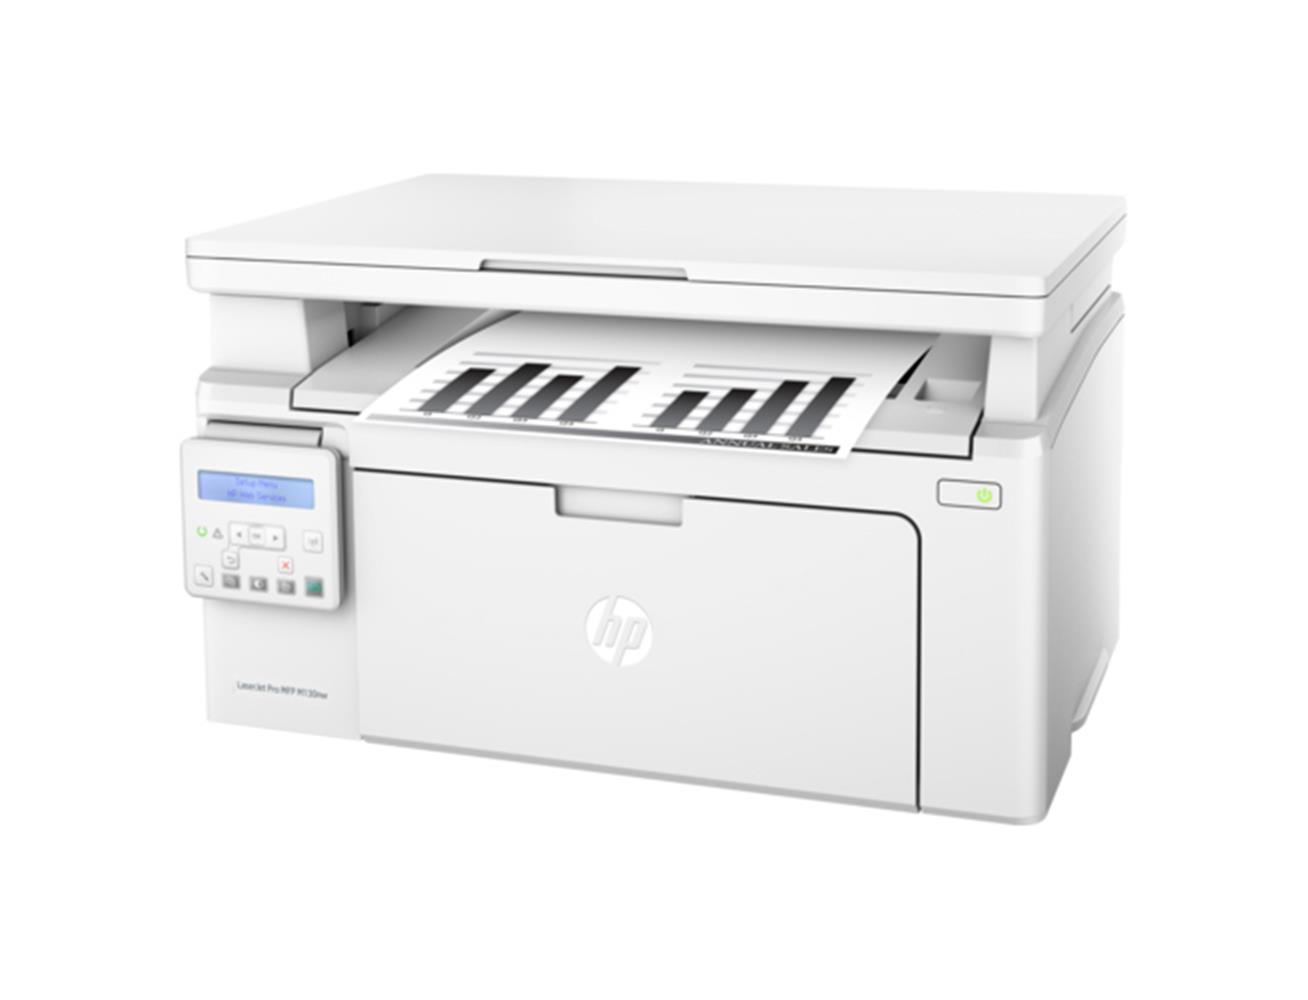 HP LaserJet Pro MFP M130nw Wireless Printer,Apple AirPrint ...